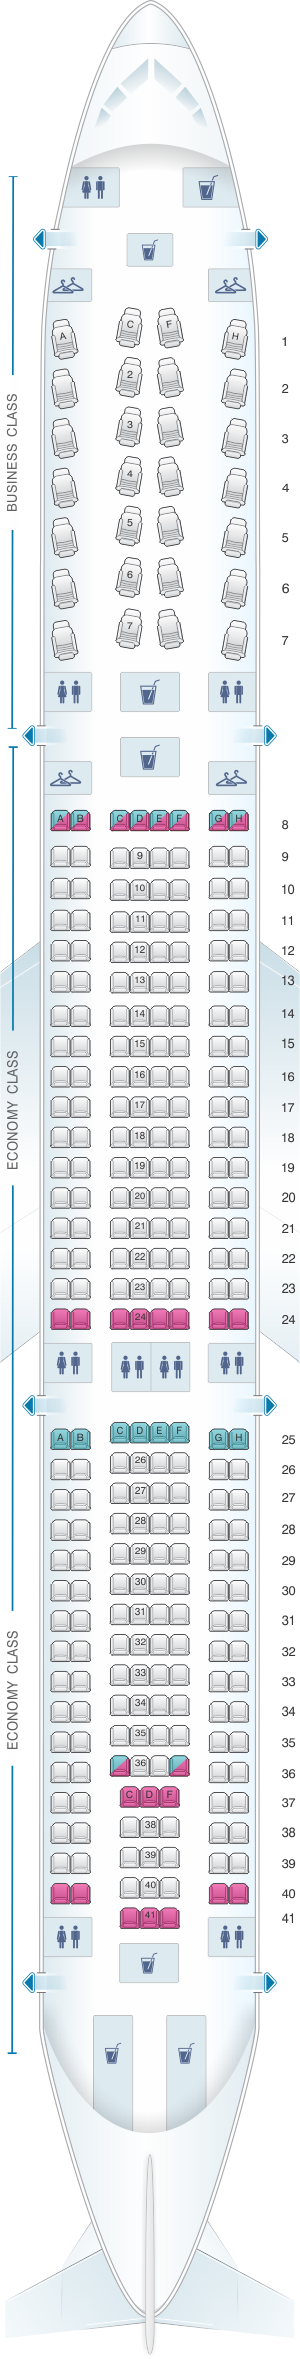 Seat map for American Airlines Airbus A330 300